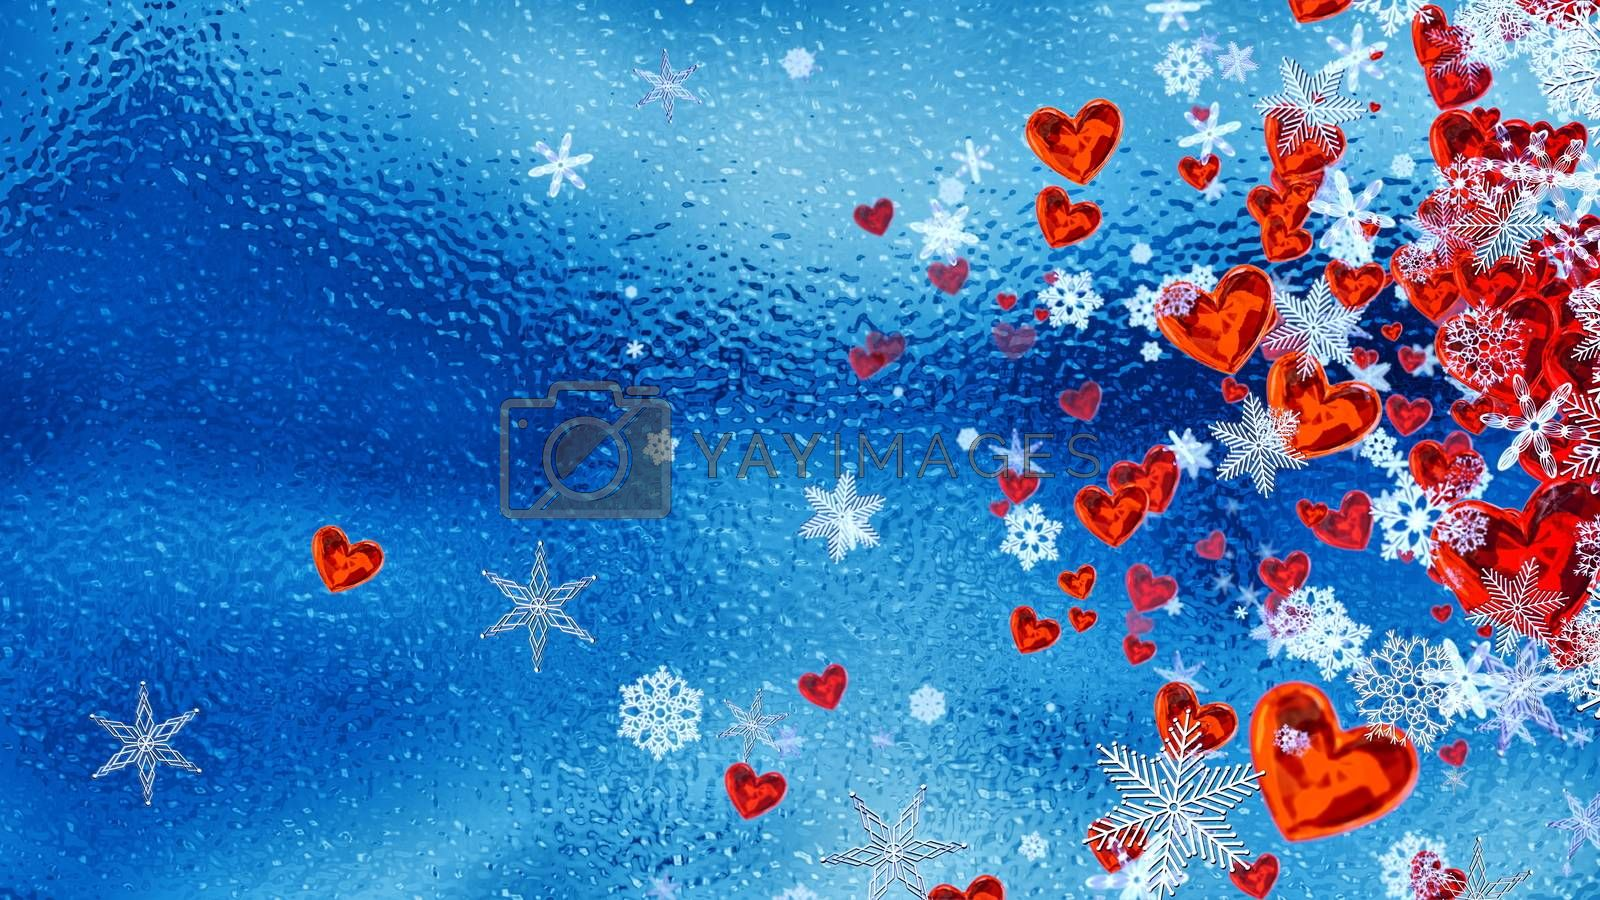 hearts and snowflakes as a symbol of romantic love by merzavka